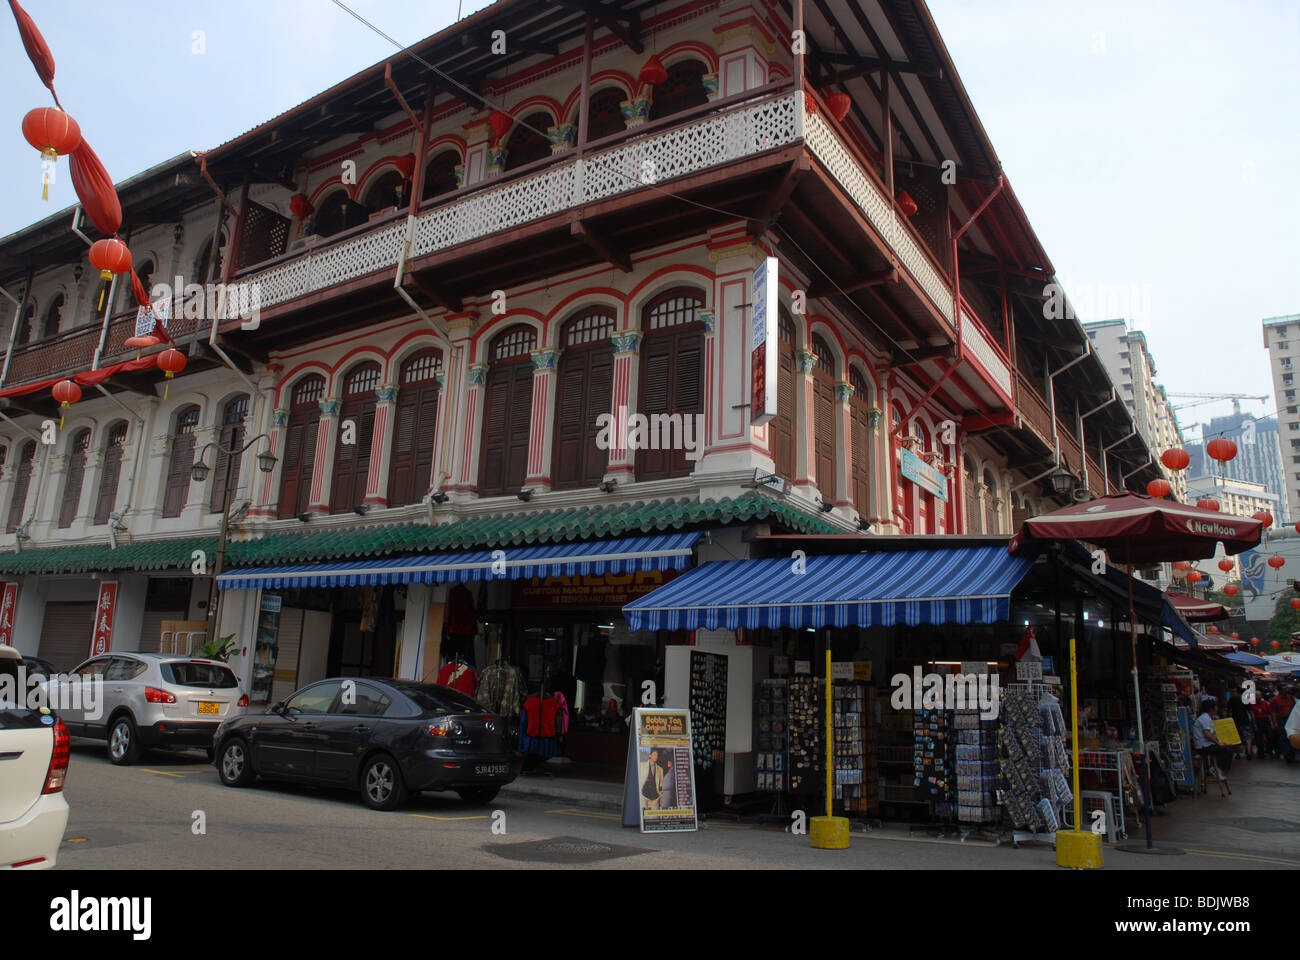 restored Chinese building on the corner of Temple Street and Trengannu Street, Chinatown, Singapore - Stock Image